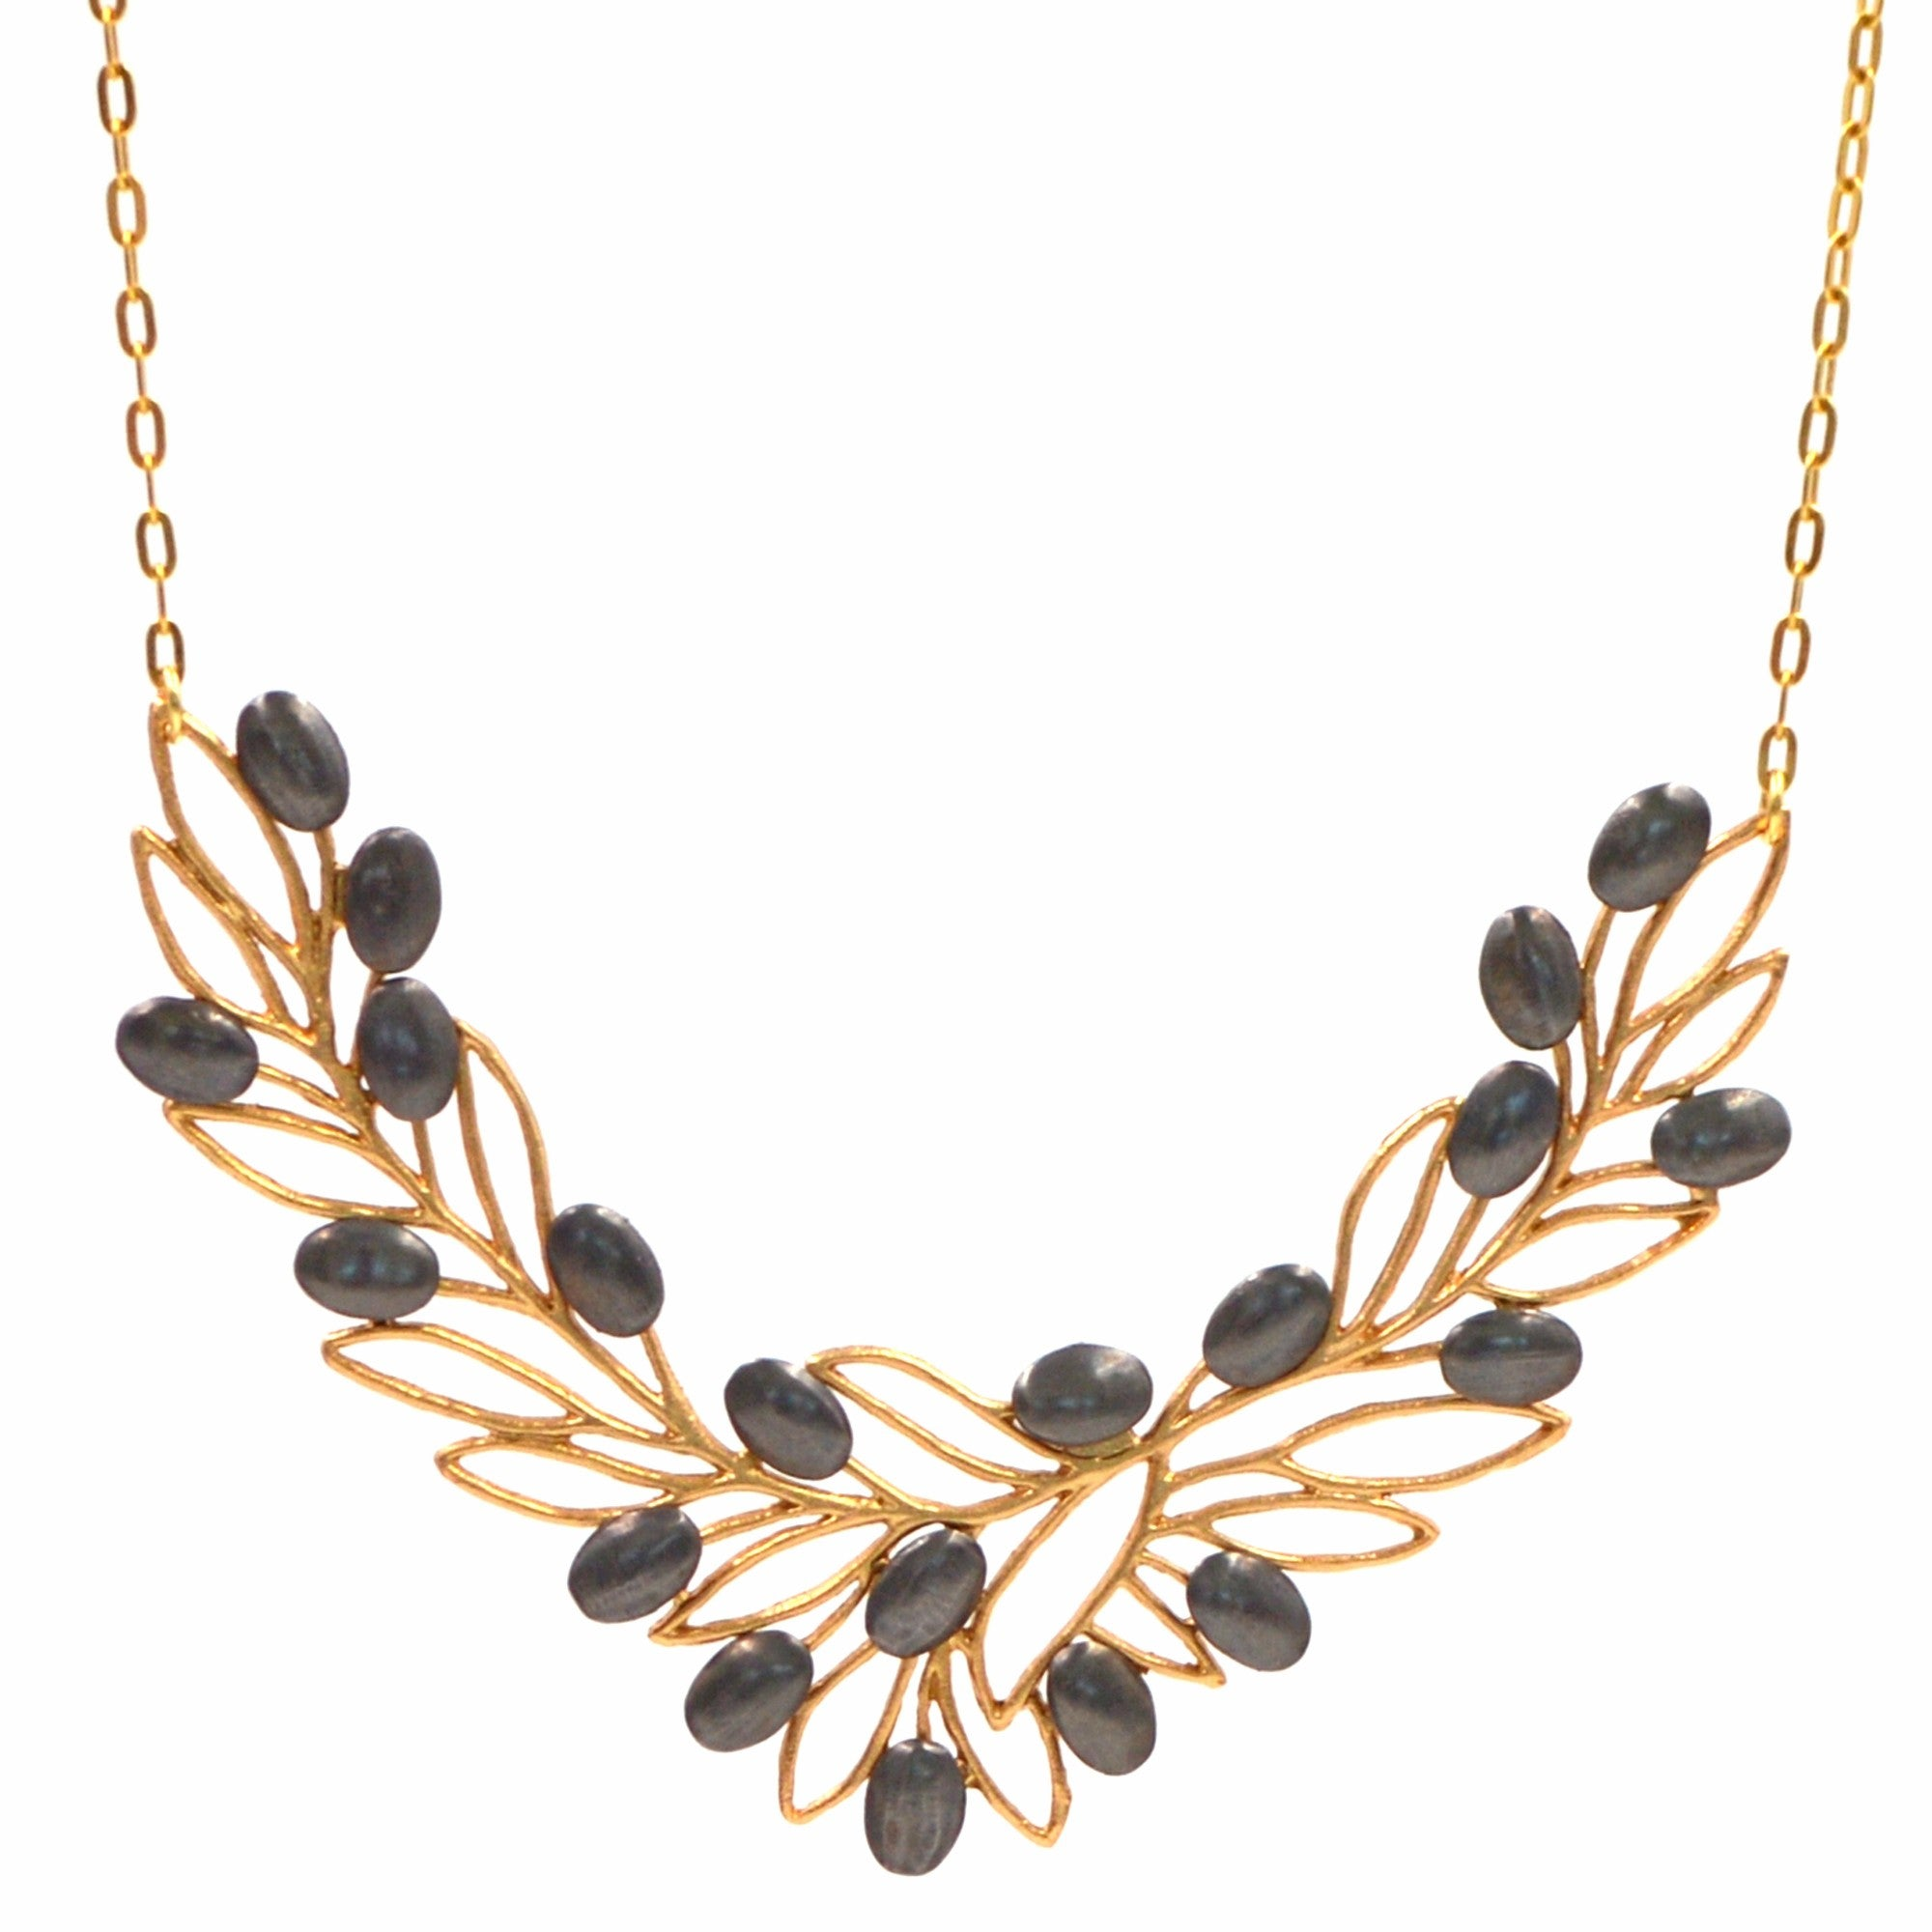 jewellery necklace gold branch olive leaf of